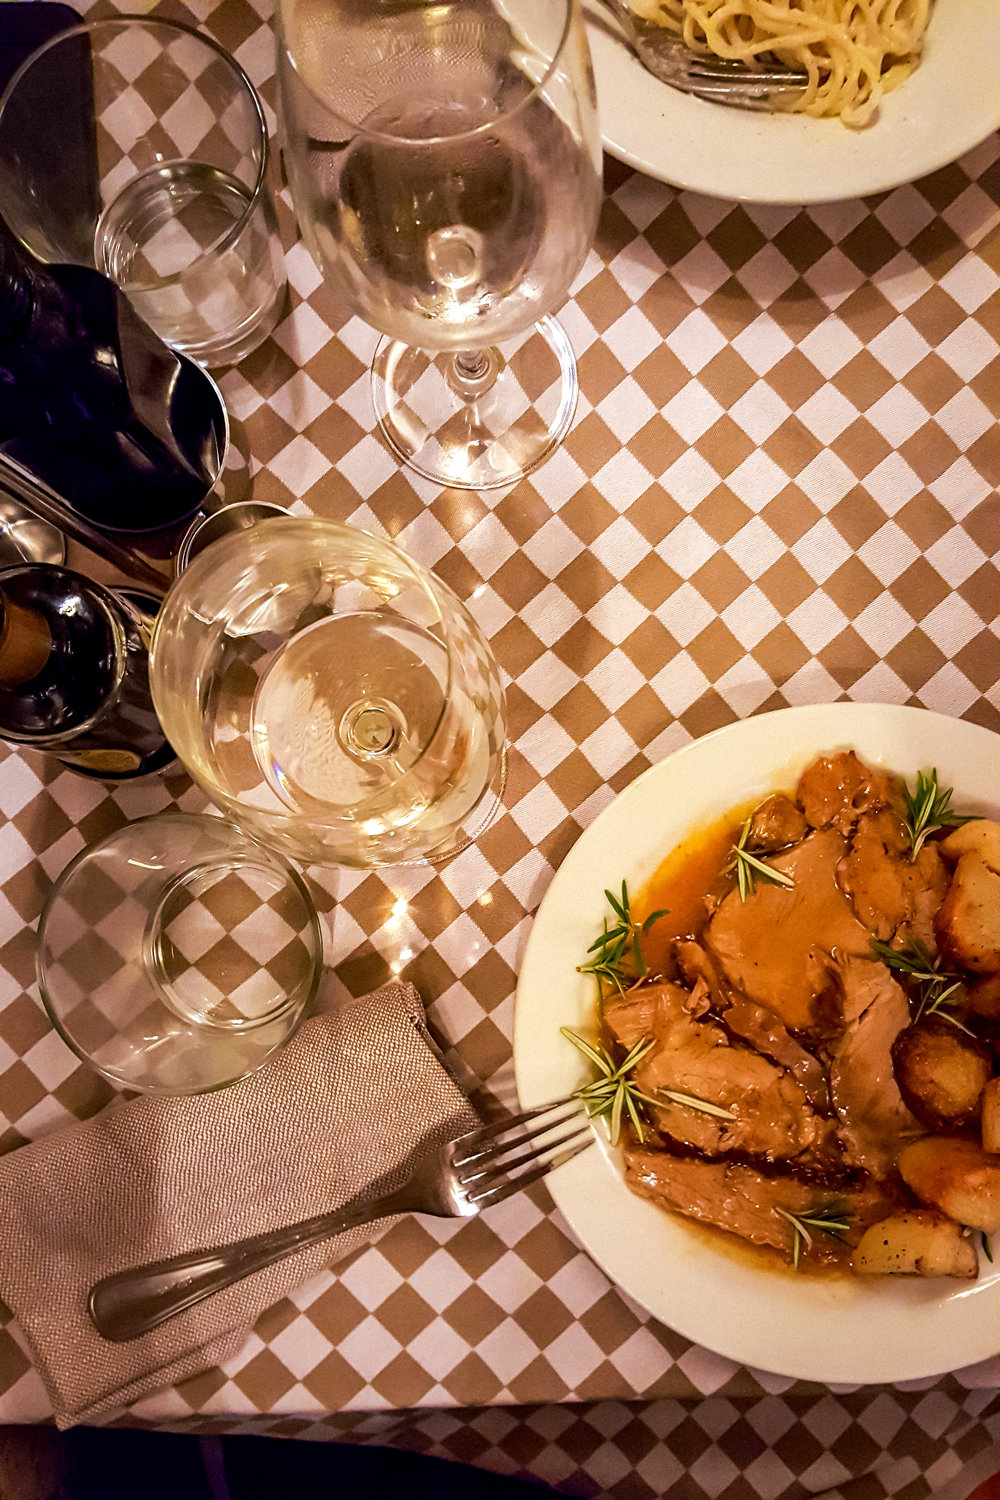 Dinner at Ristorante Matricianella, Roma